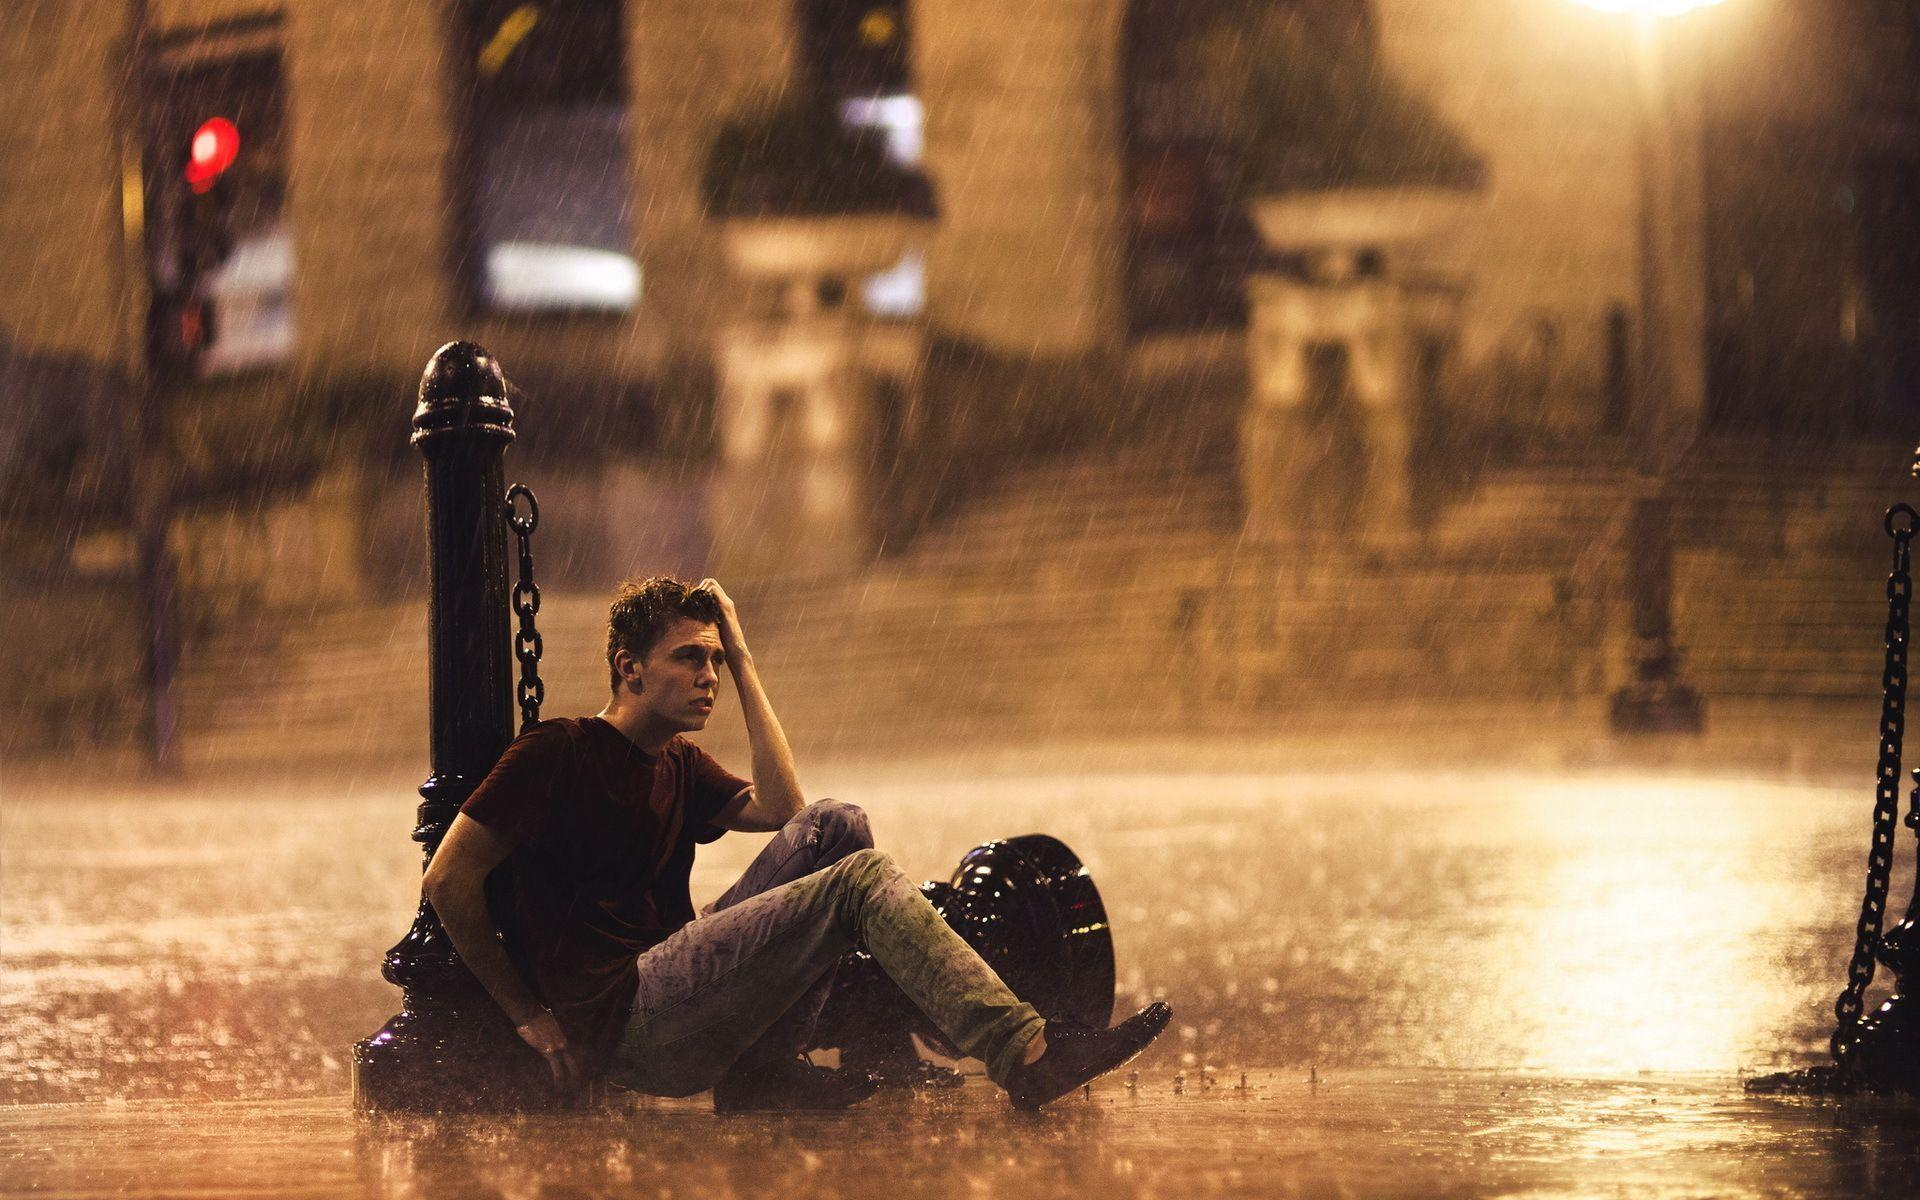 Sad boy in rain hd wallpapers wallpaper cave - Sad man hd wallpaper ...